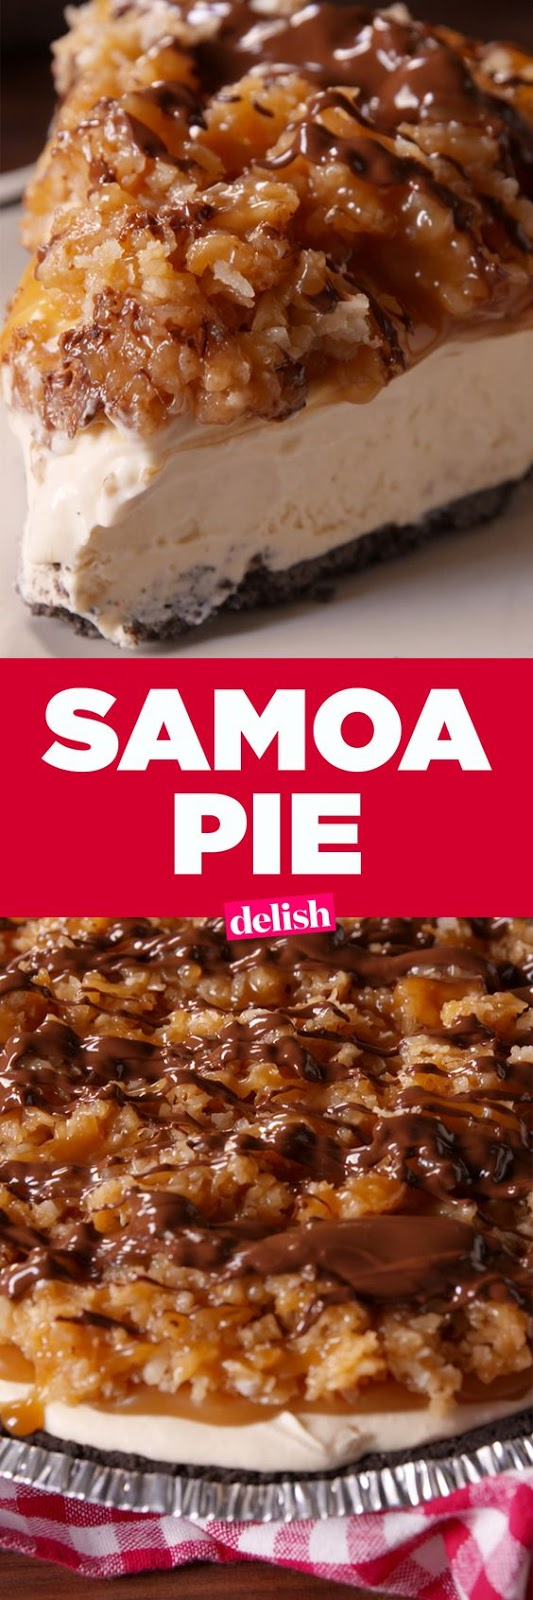 Looking for an easy caramel pie recipe? This Samoa Pie Recipe from Delish.com is the best.